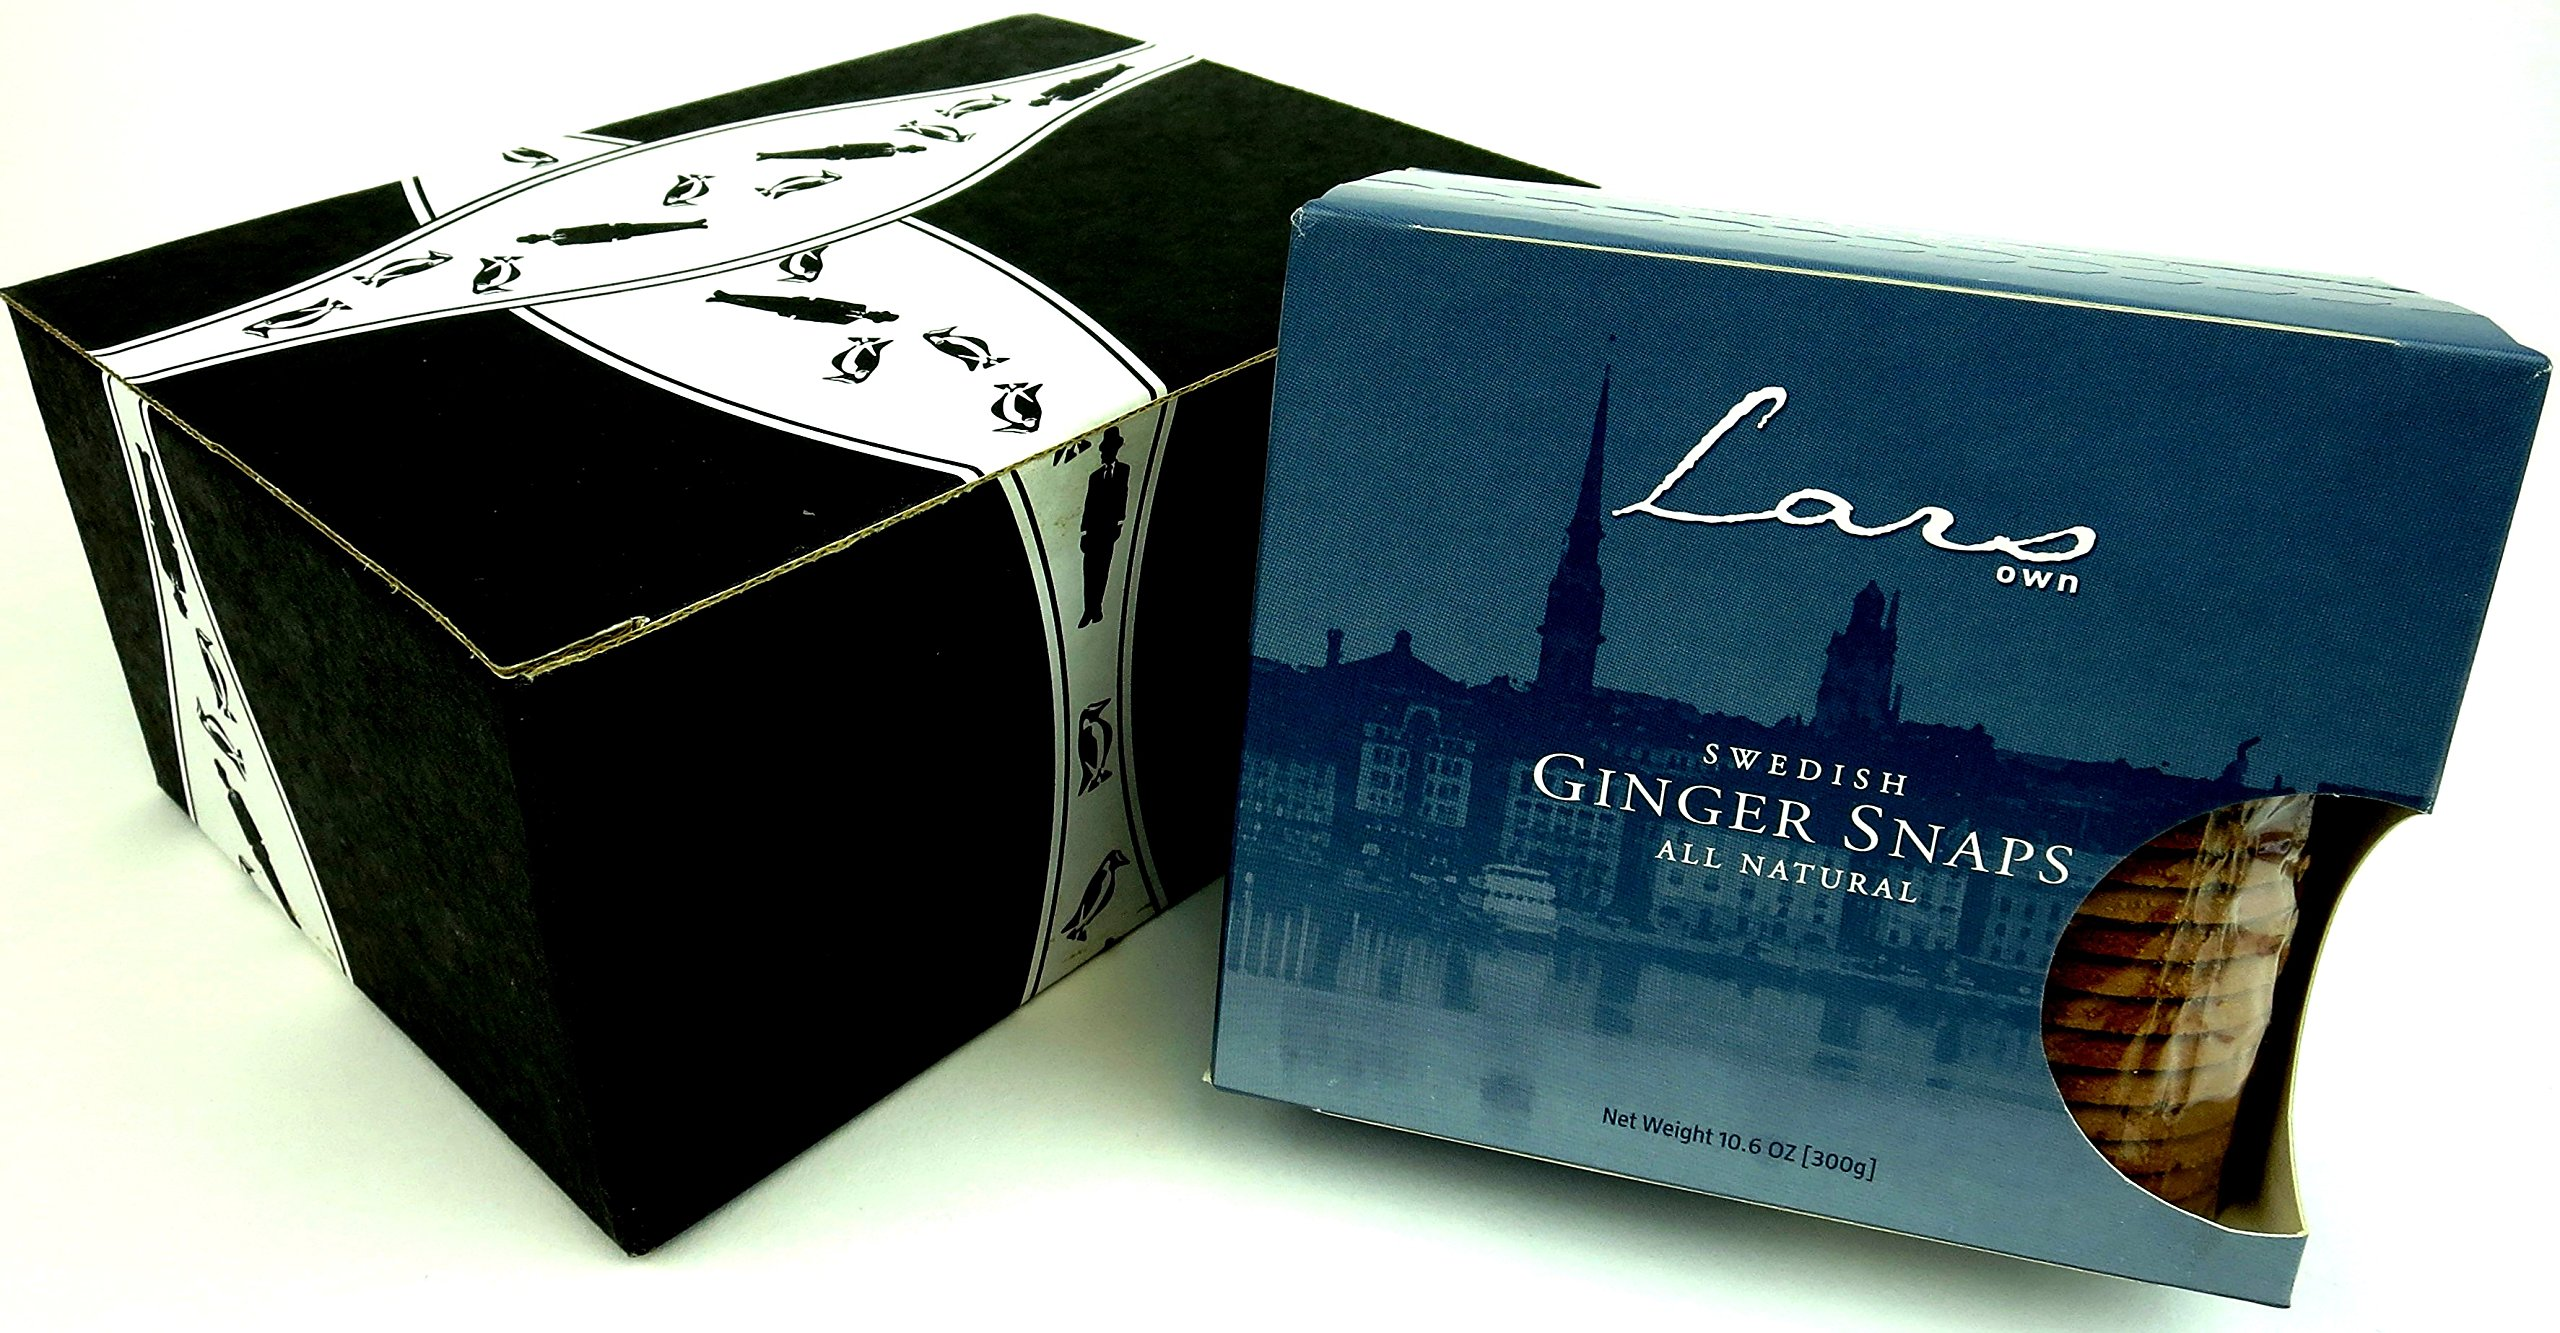 Lars' Own Swedish Ginger Snaps, 10.6 oz Package in a Gift Box